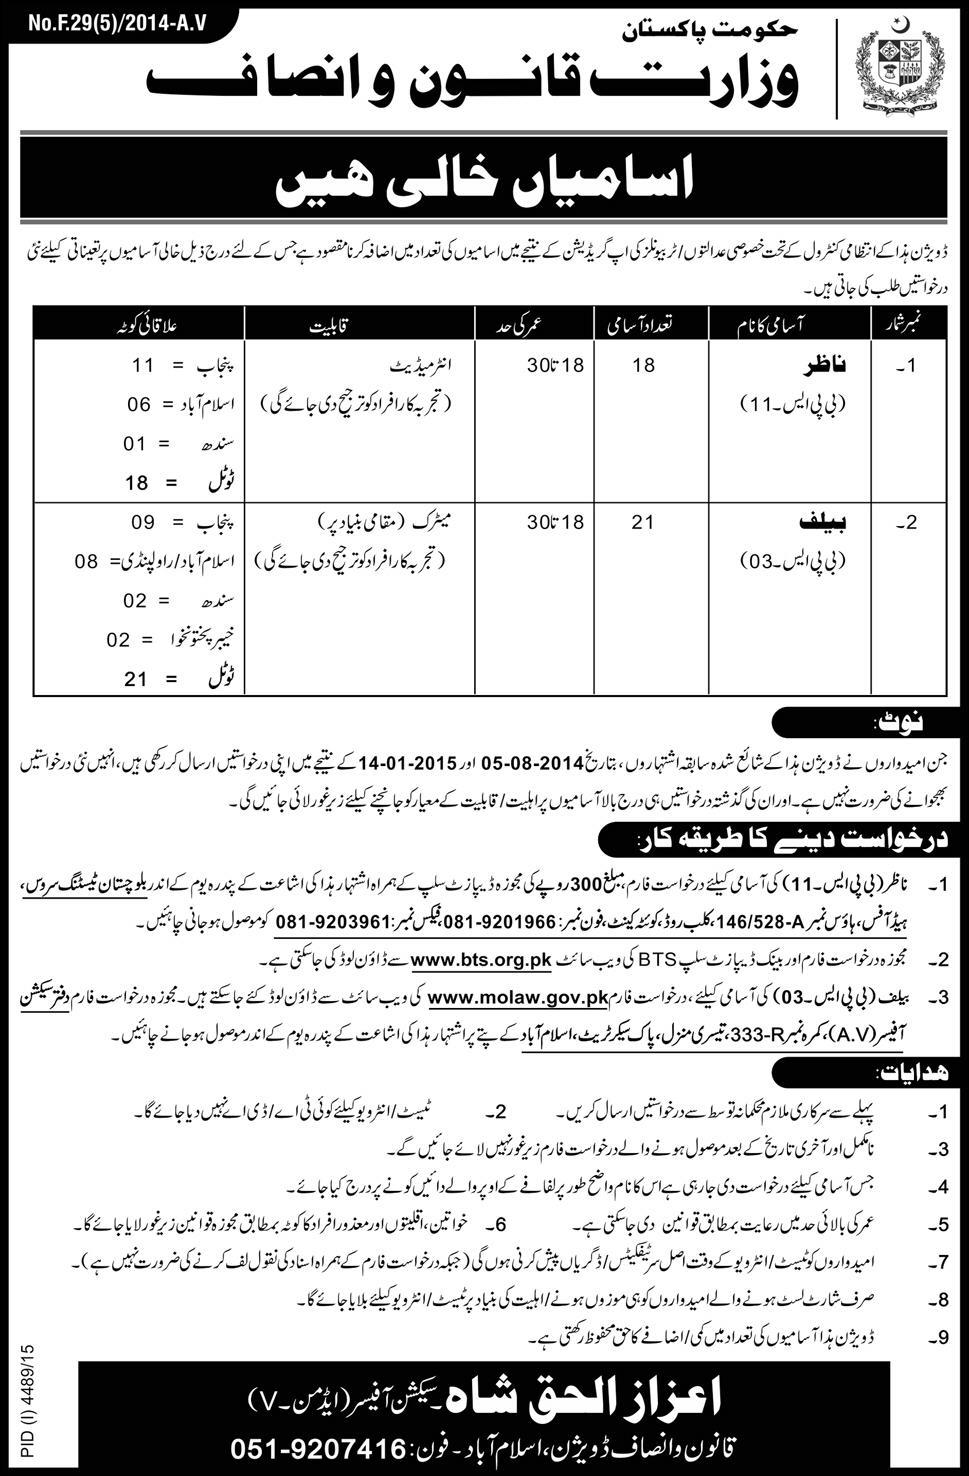 Ministry Of Law & Justice Jobs 2016